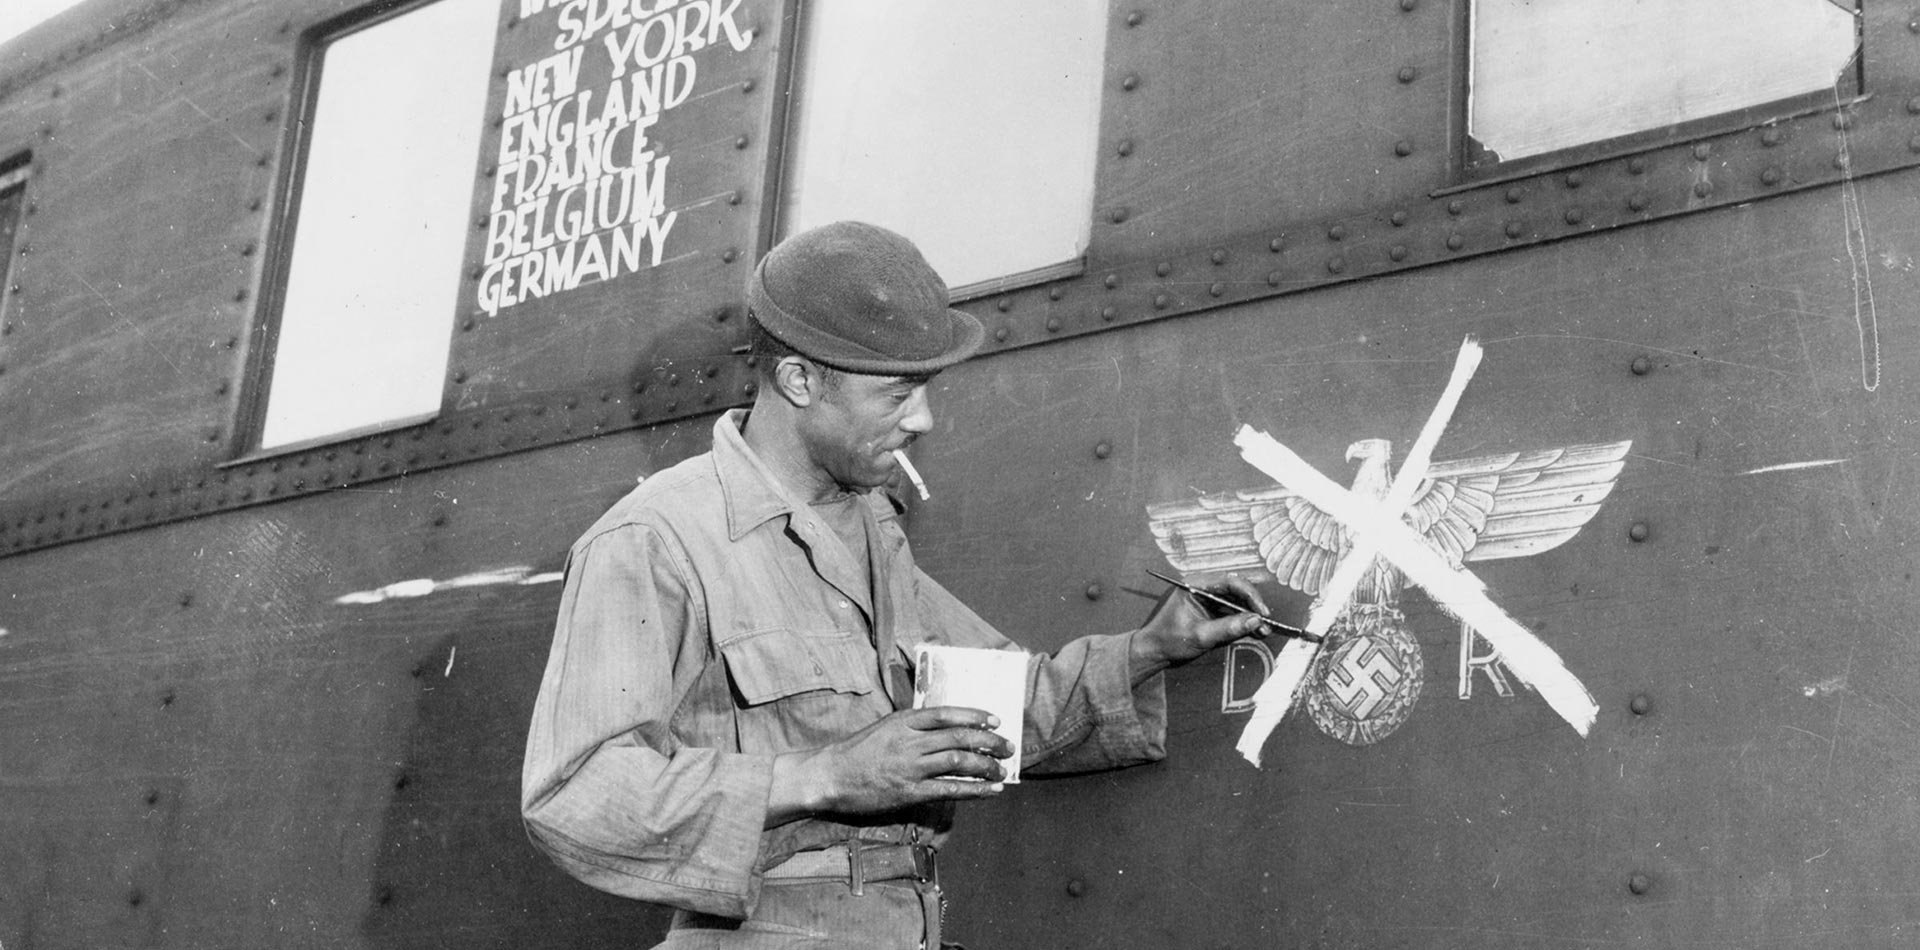 A man is painting on a waggon